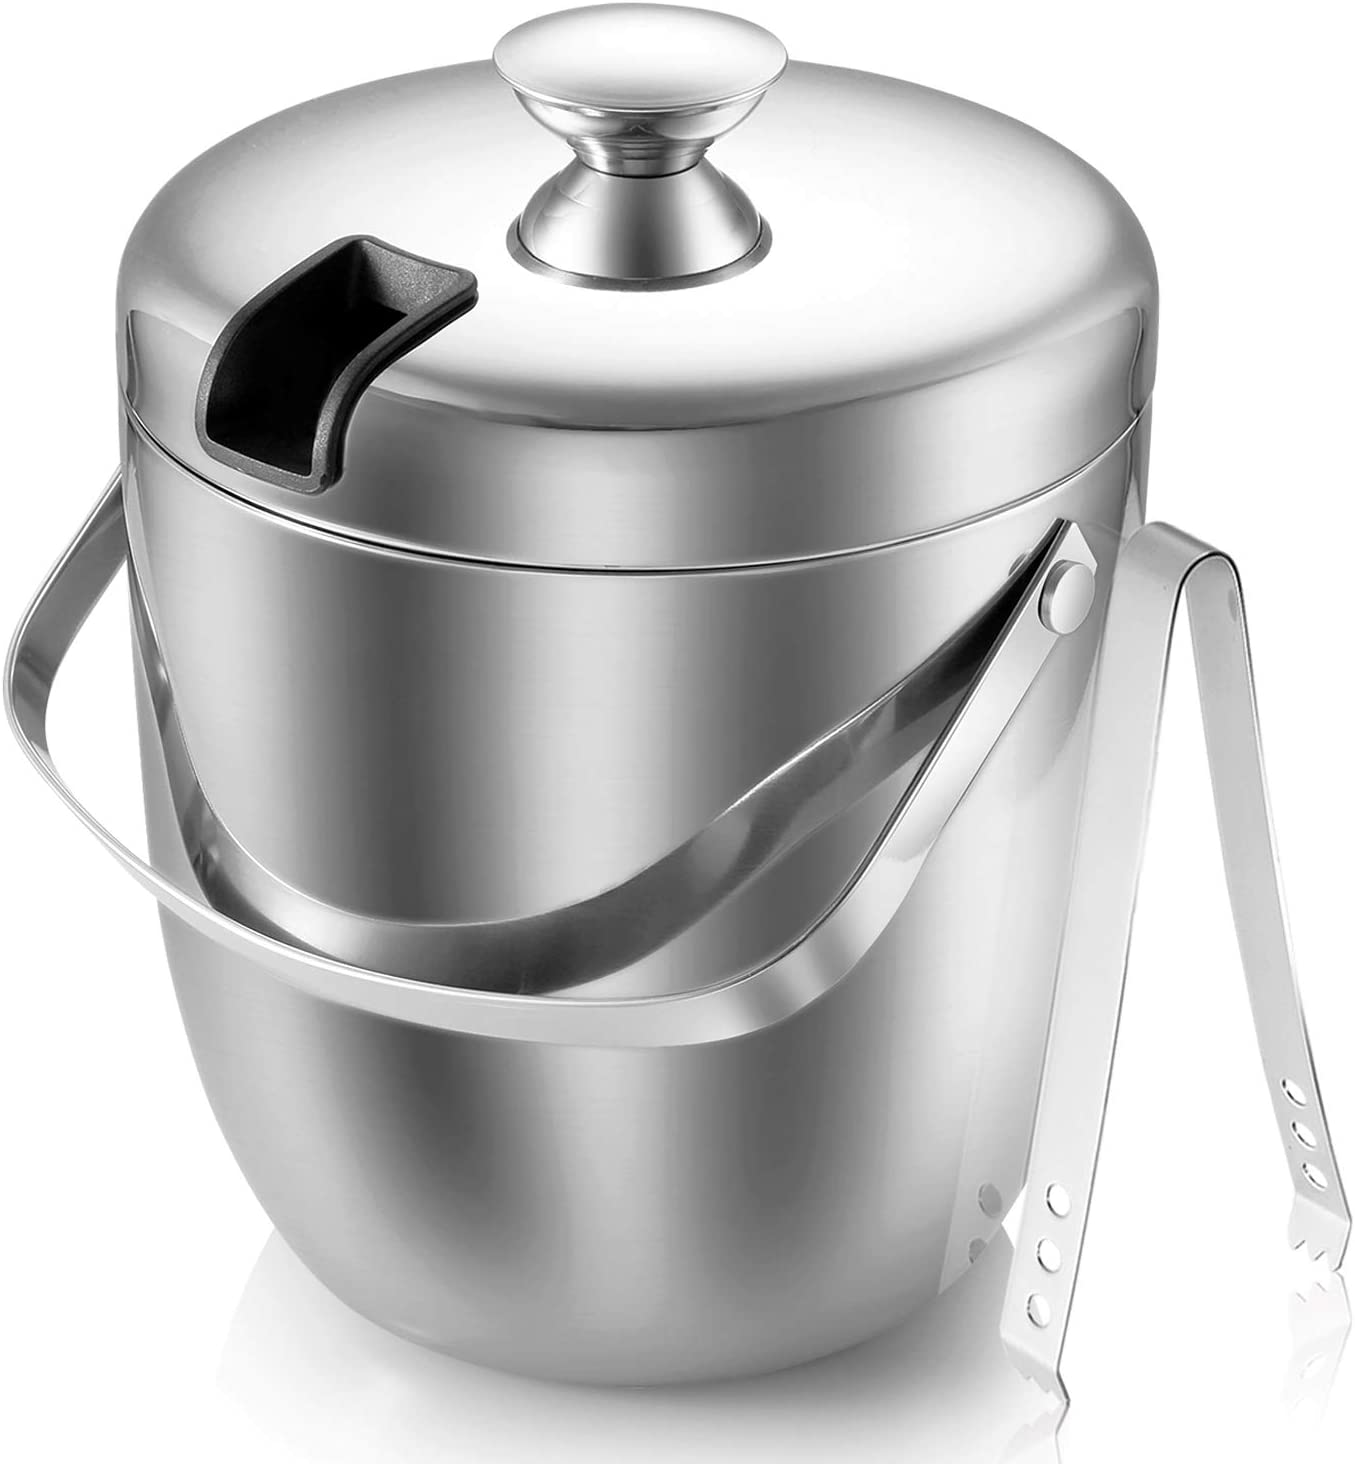 Malmo Insulated Double Walled Stainless Steel Ice & Wine Bucket with Tongs & Lid (2.8 L) - Portable Chiller Bin Basket for Parties, BBQ & Buffet